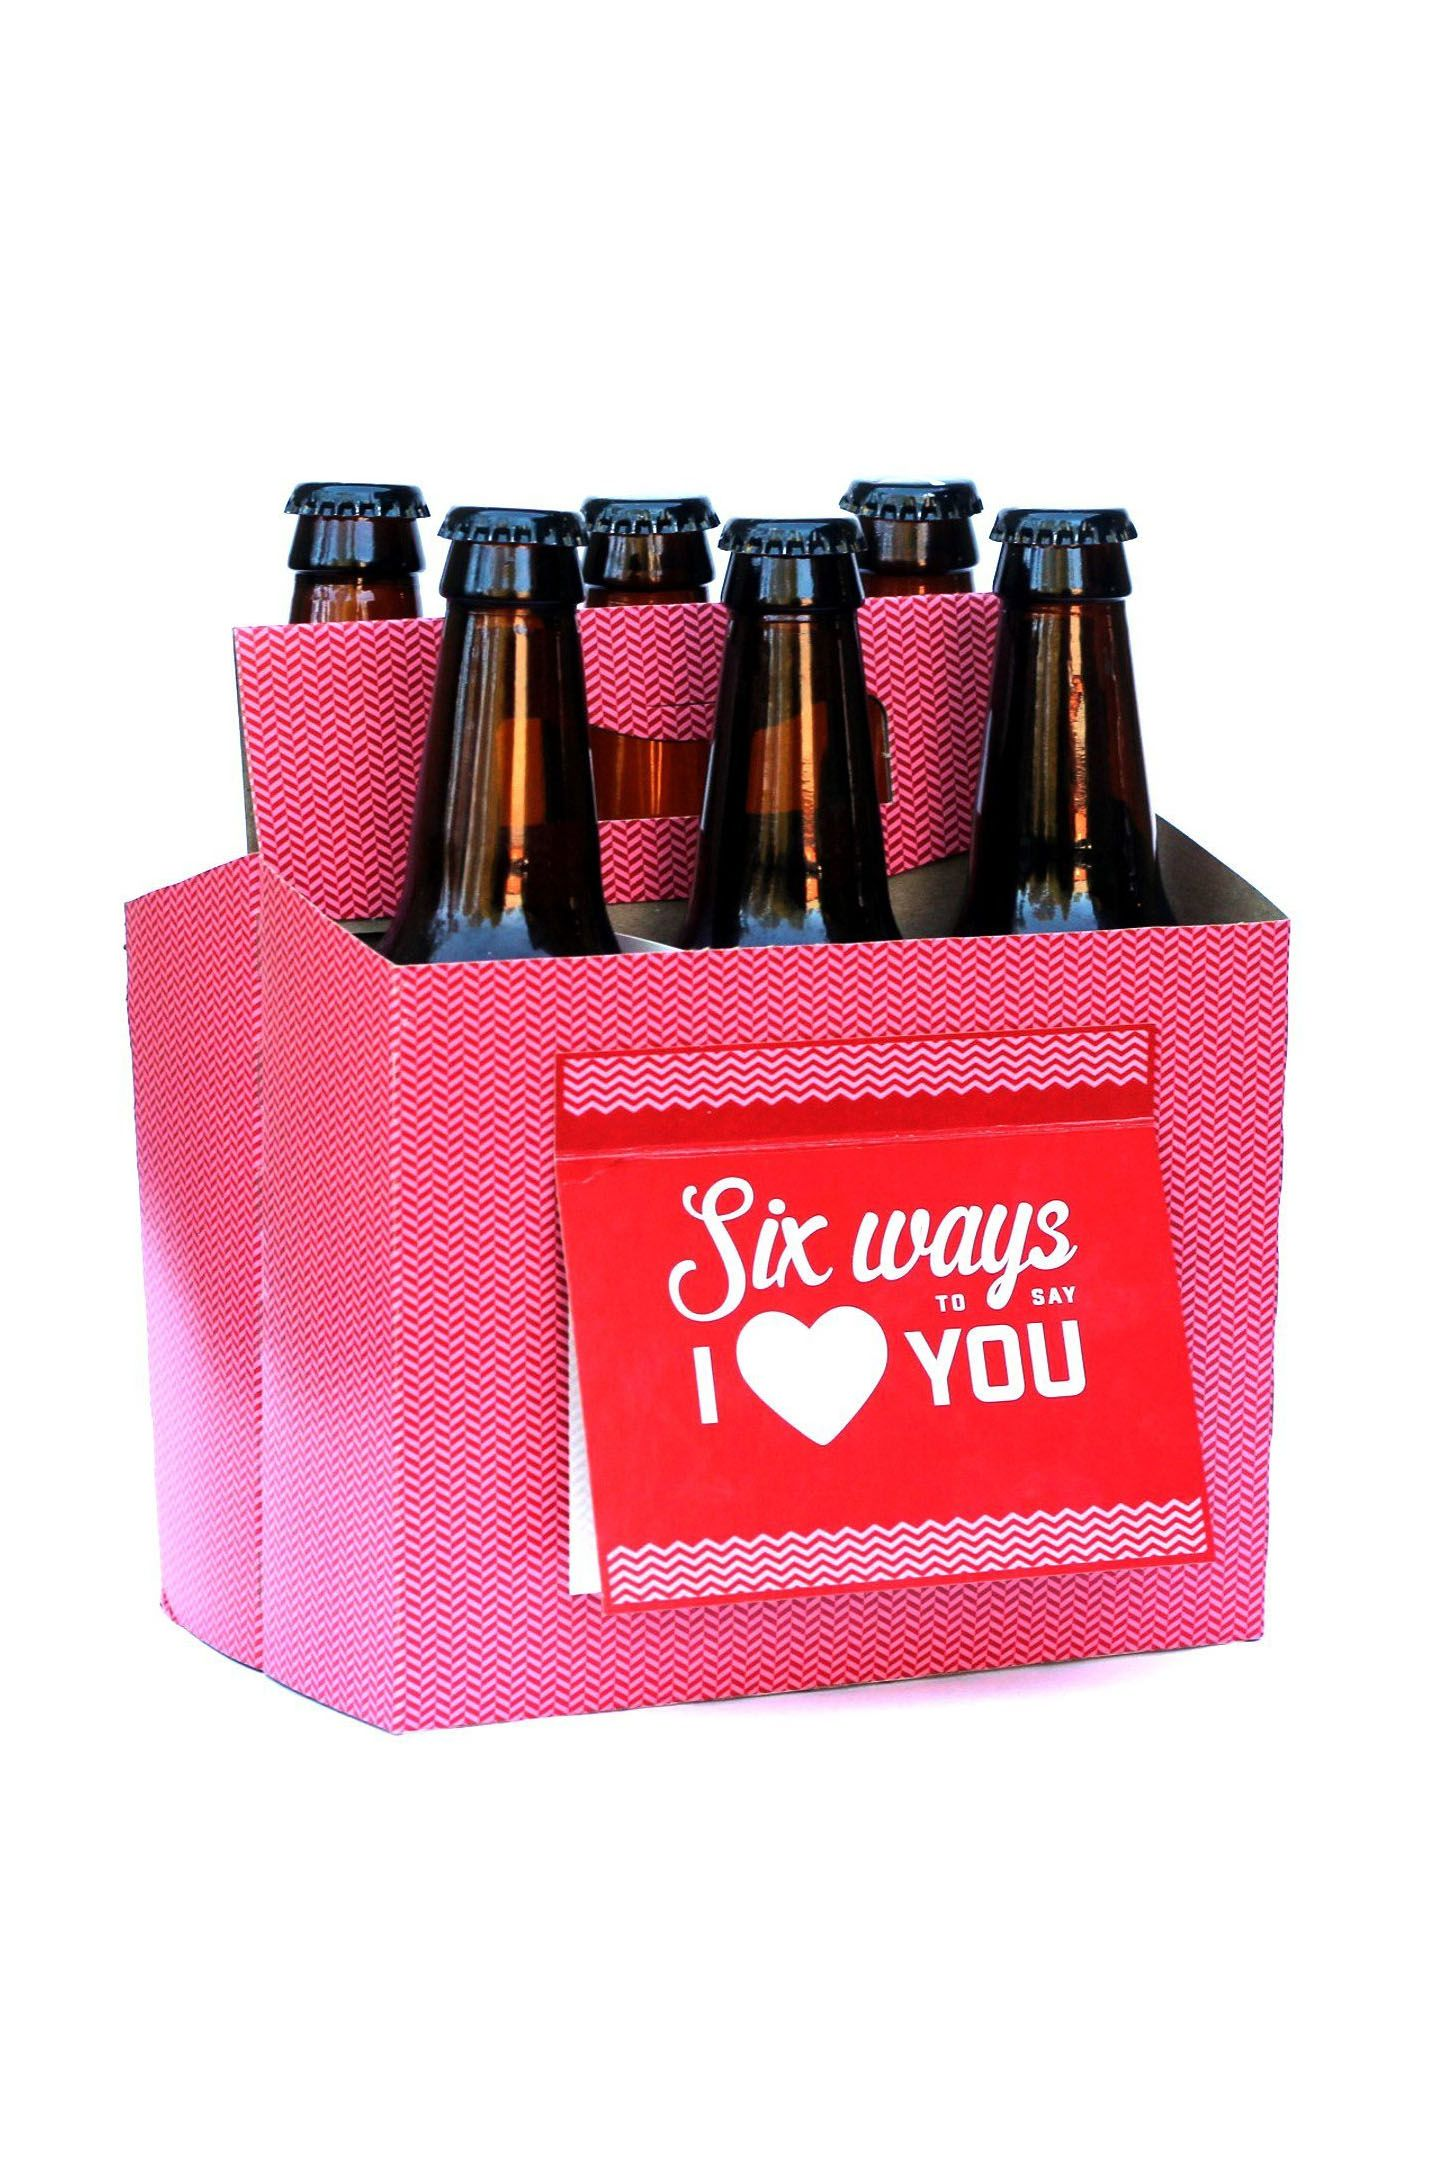 40 best valentine's day gifts for him 2018 - good ideas for